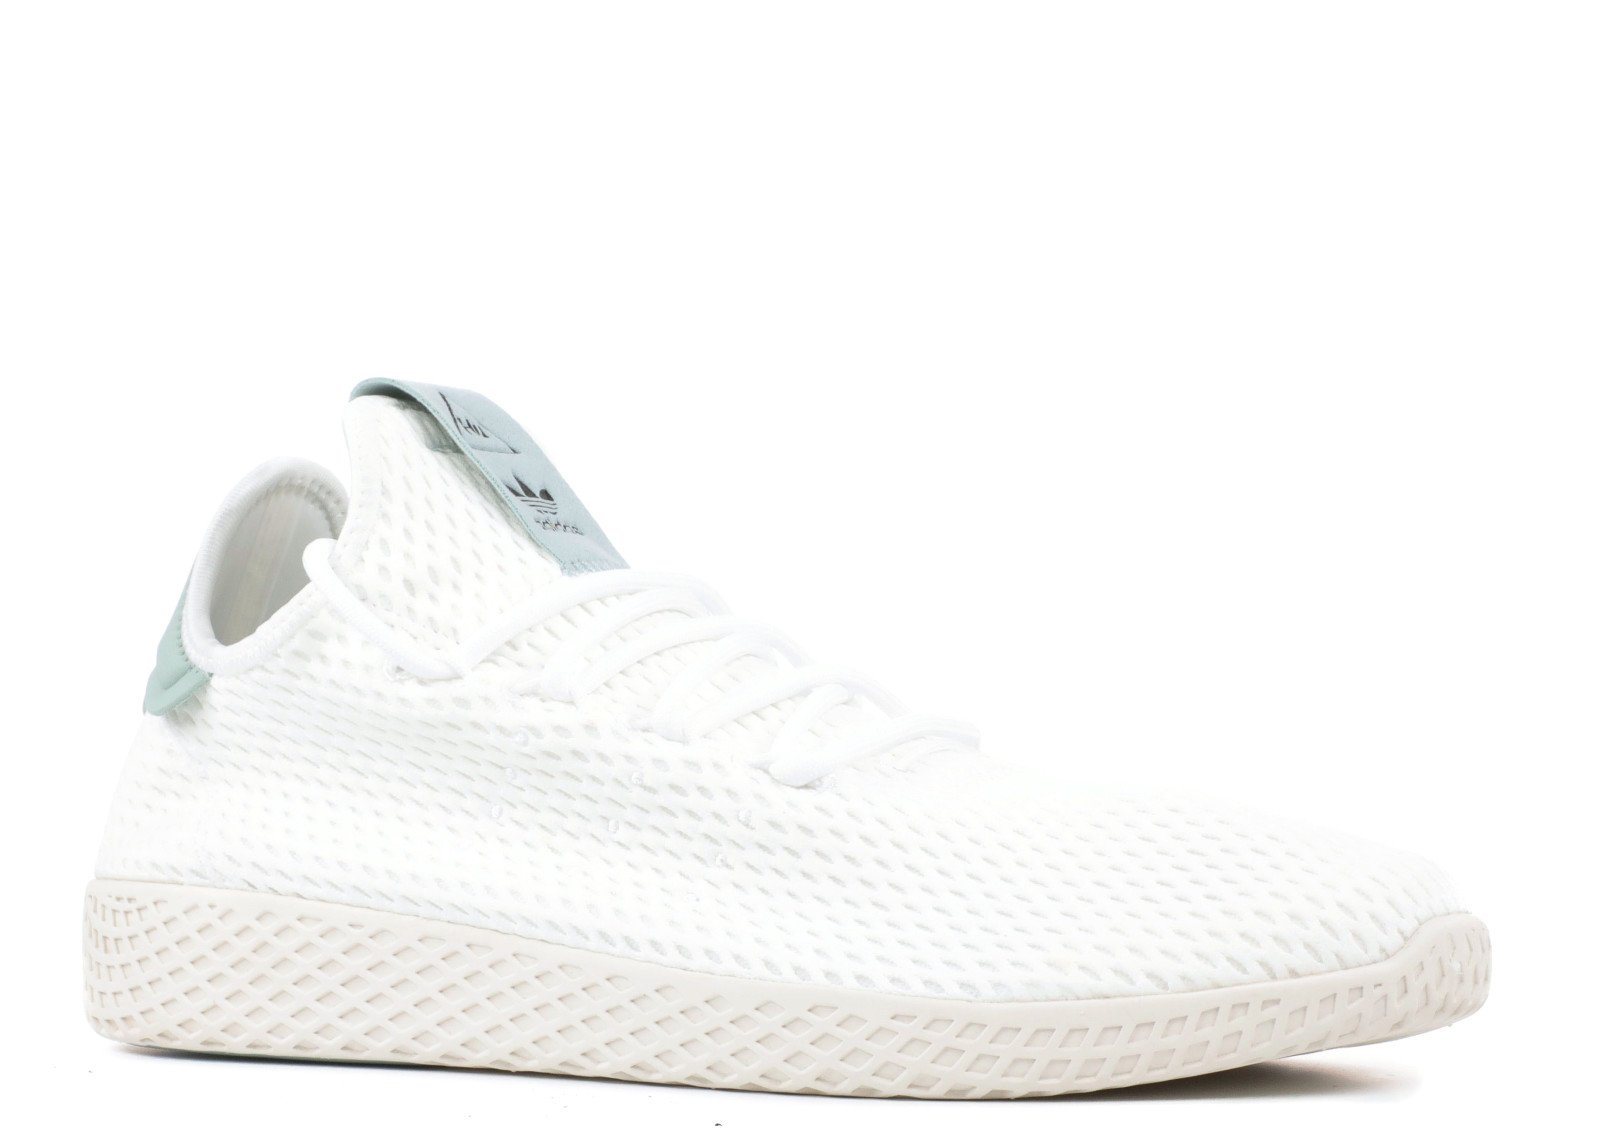 2d1d184d4 Galleon - Adidas Originals Men s Pharrell Williams Human Race  White White Green 8 D US